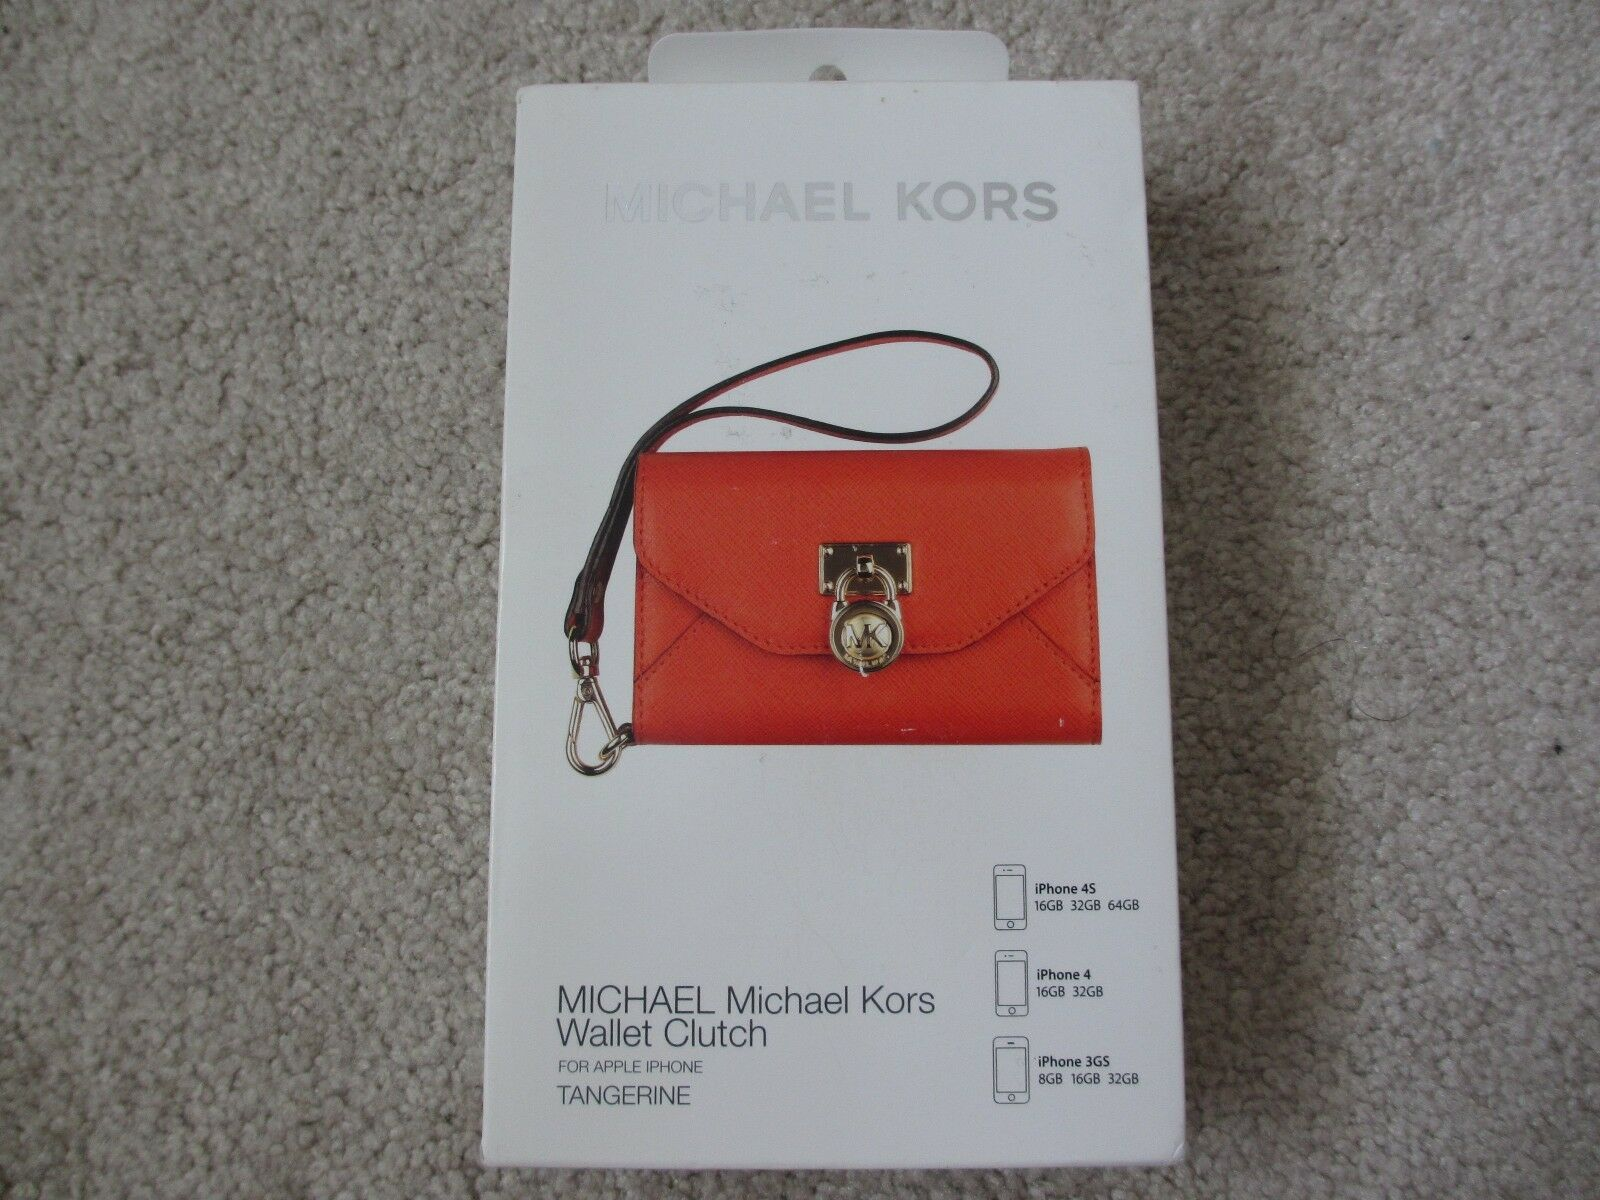 Michael Kors MK Tangerine Wallet Clutch Wristlet for iPhone 3gs 4 4s for sale online | eBay